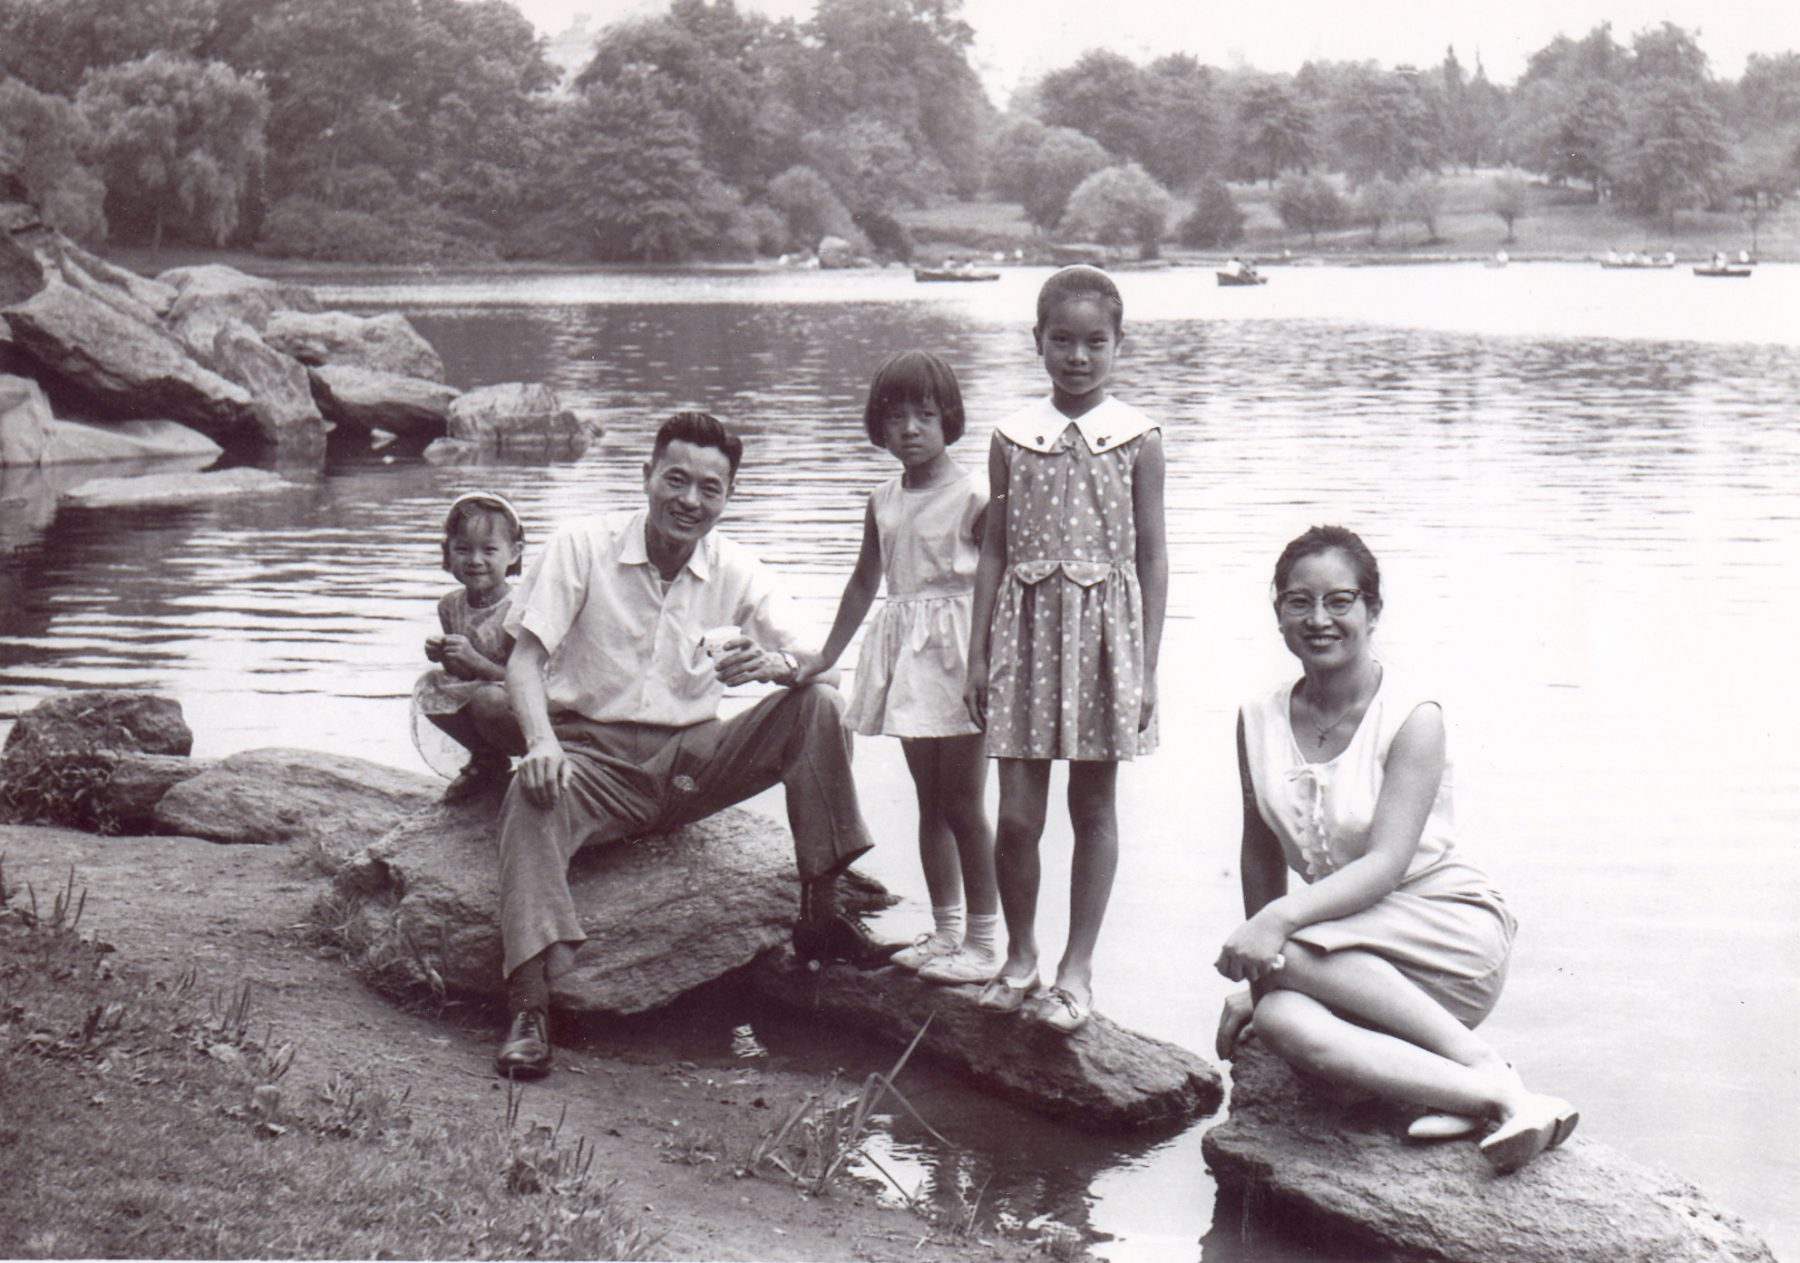 The young Chao family after a day's outing at Central Park, New York City.